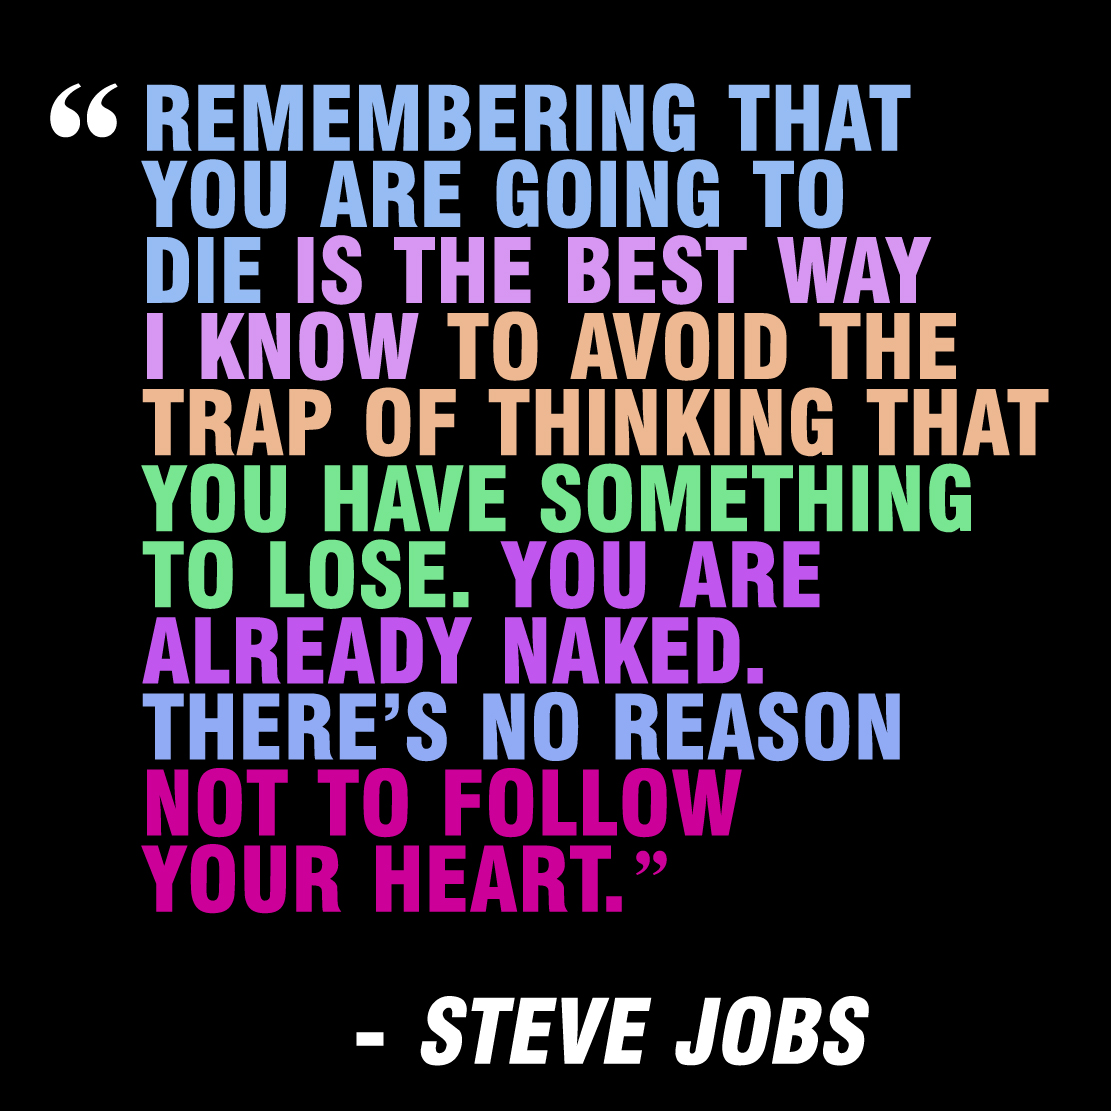 Steve Jobs  Quote (About university trap success stanford speech naked lose life inspirational heart)